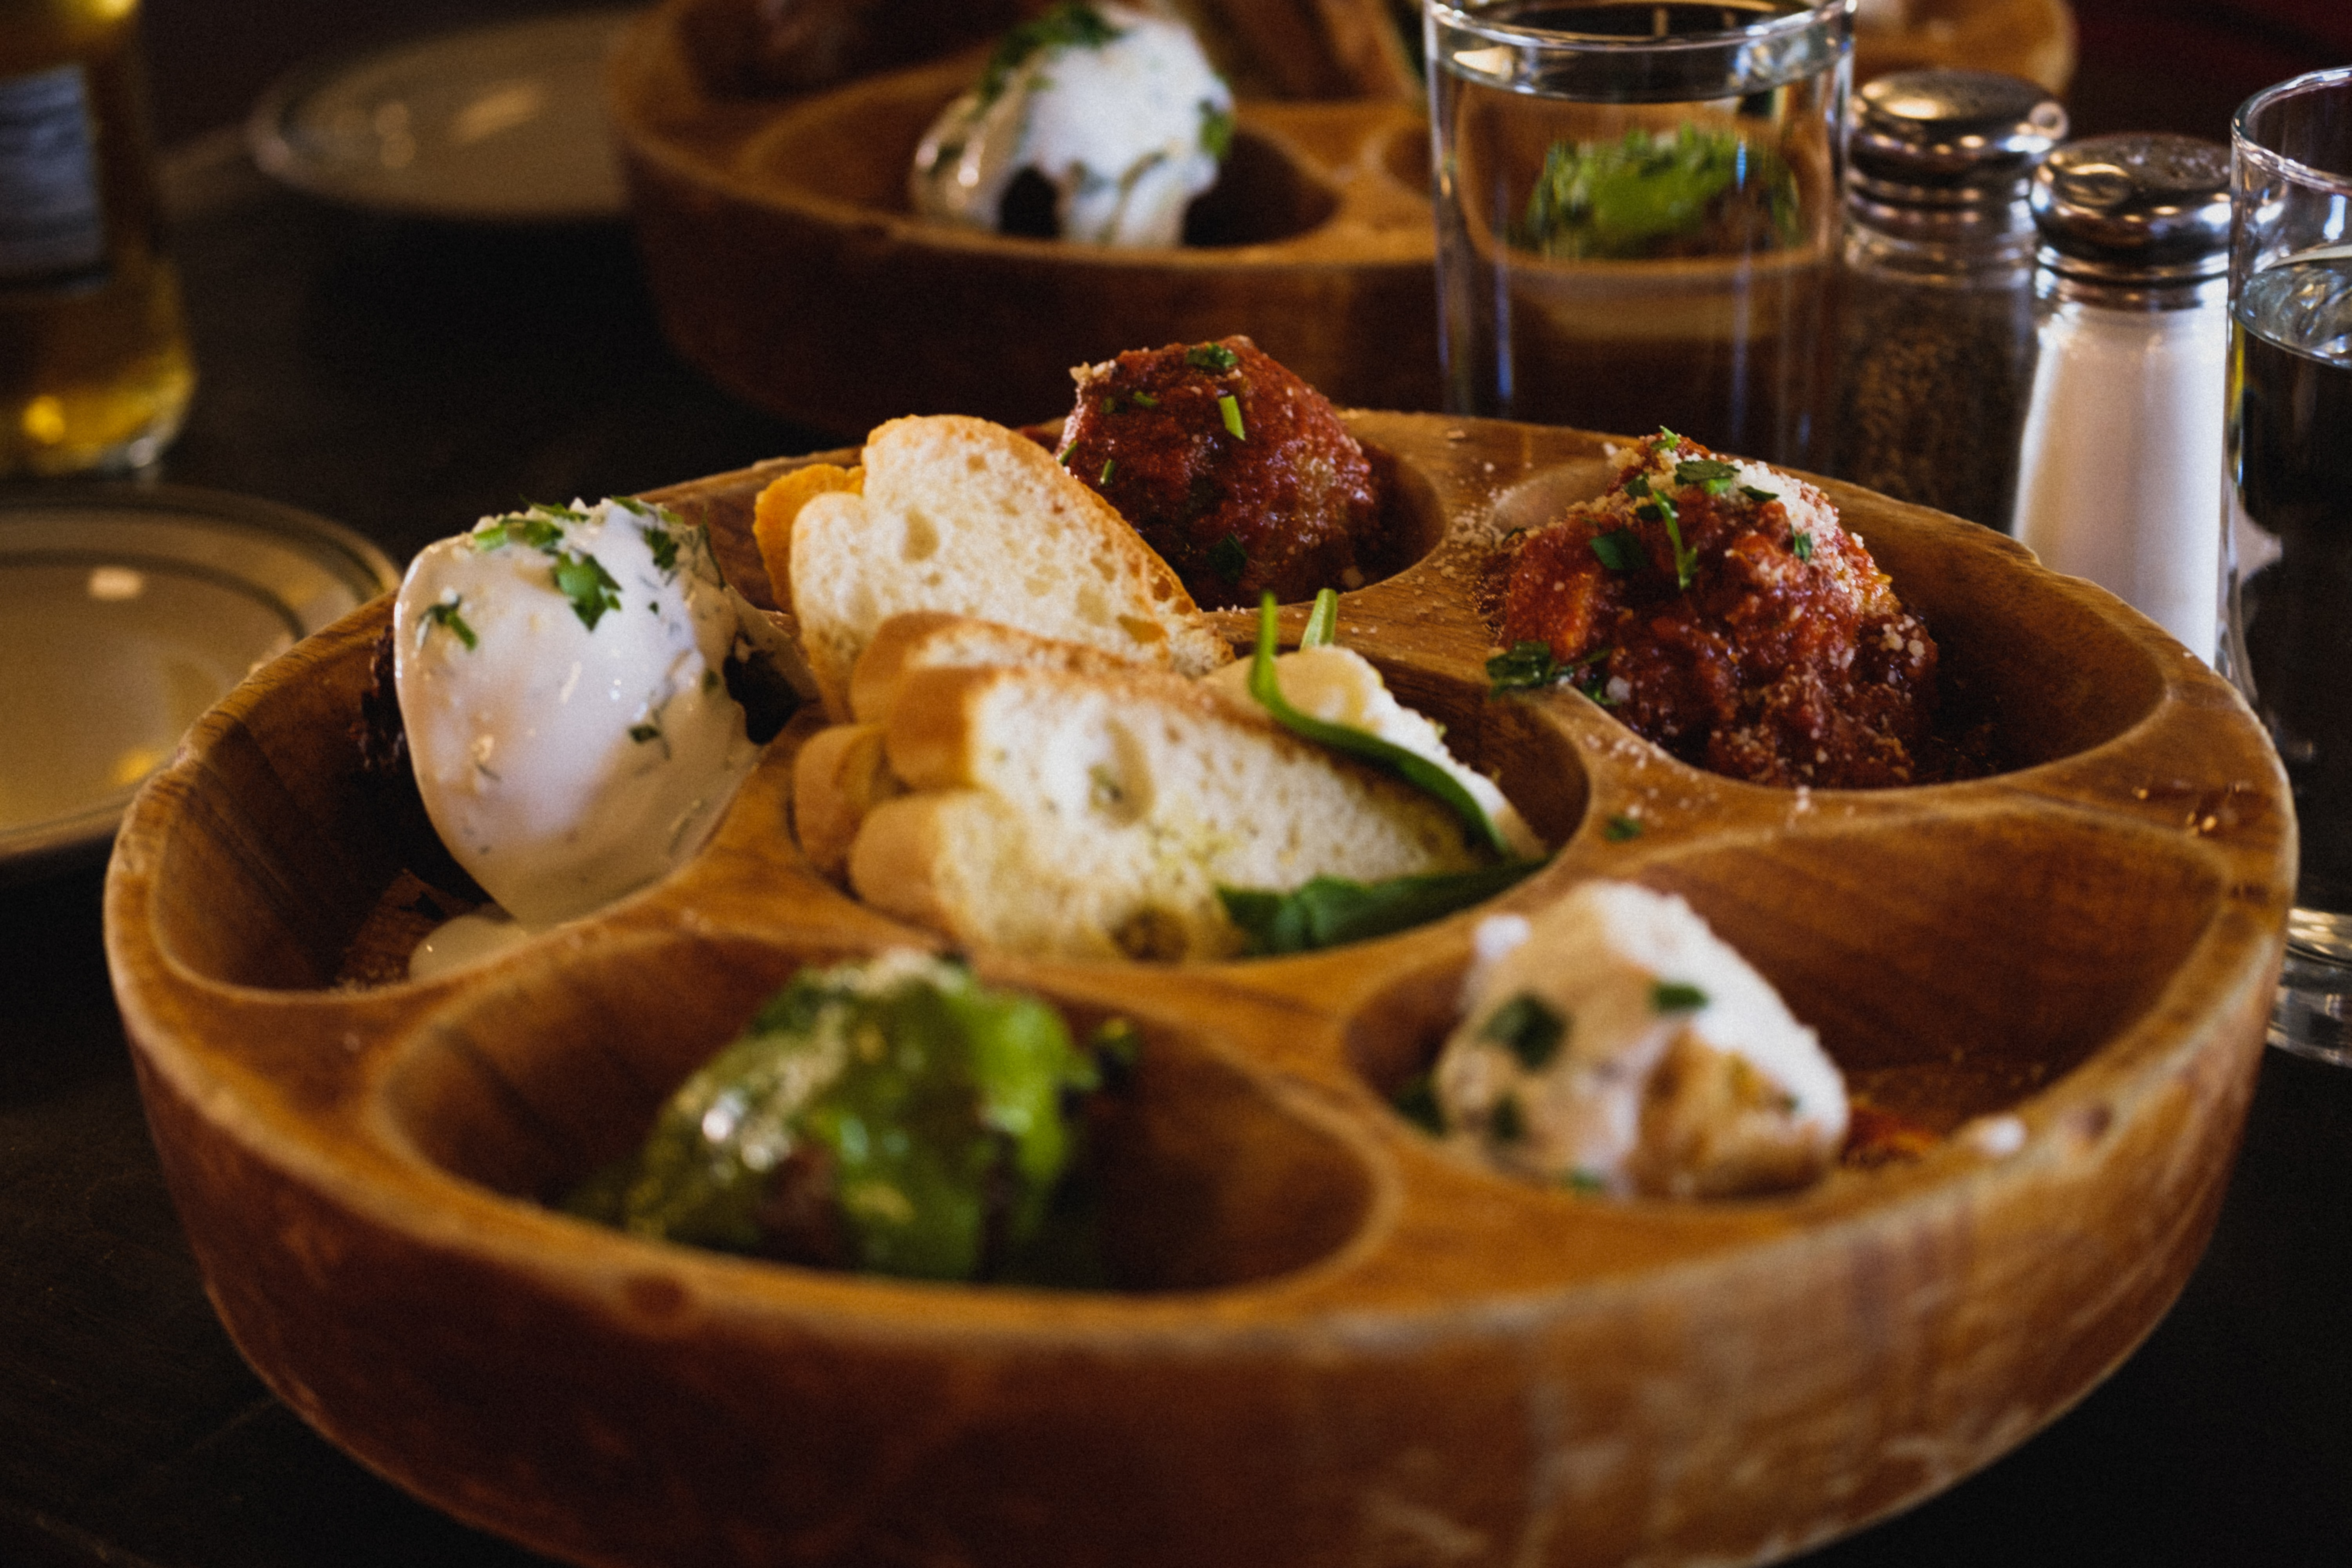 food photography of partition tray with bread and dips